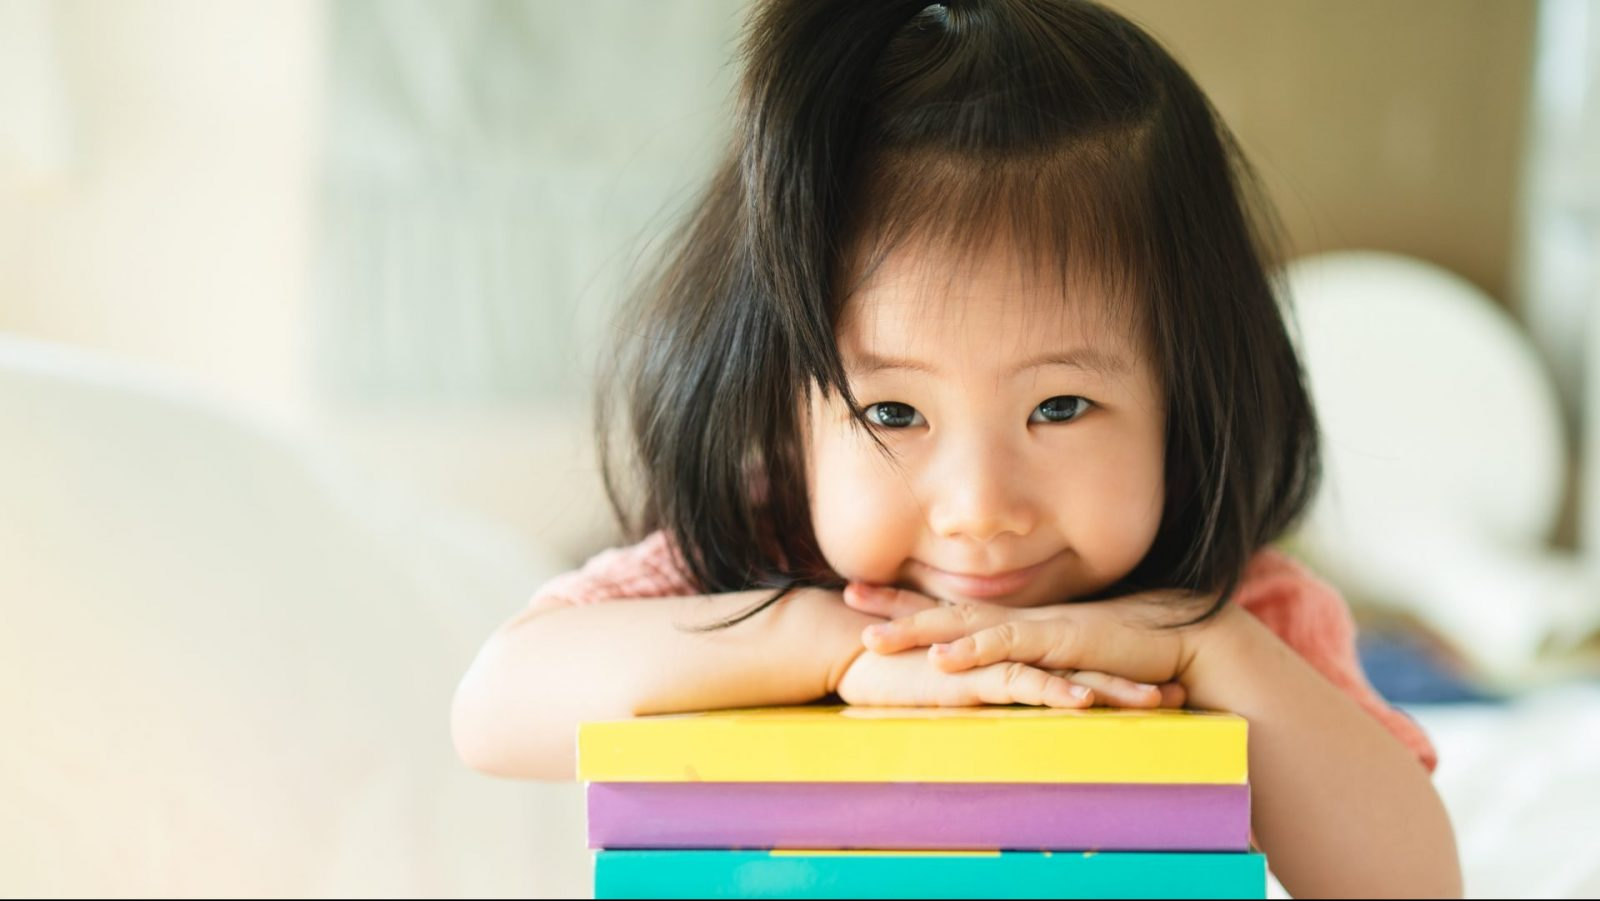 Toddler girl leaning on a stack of books.